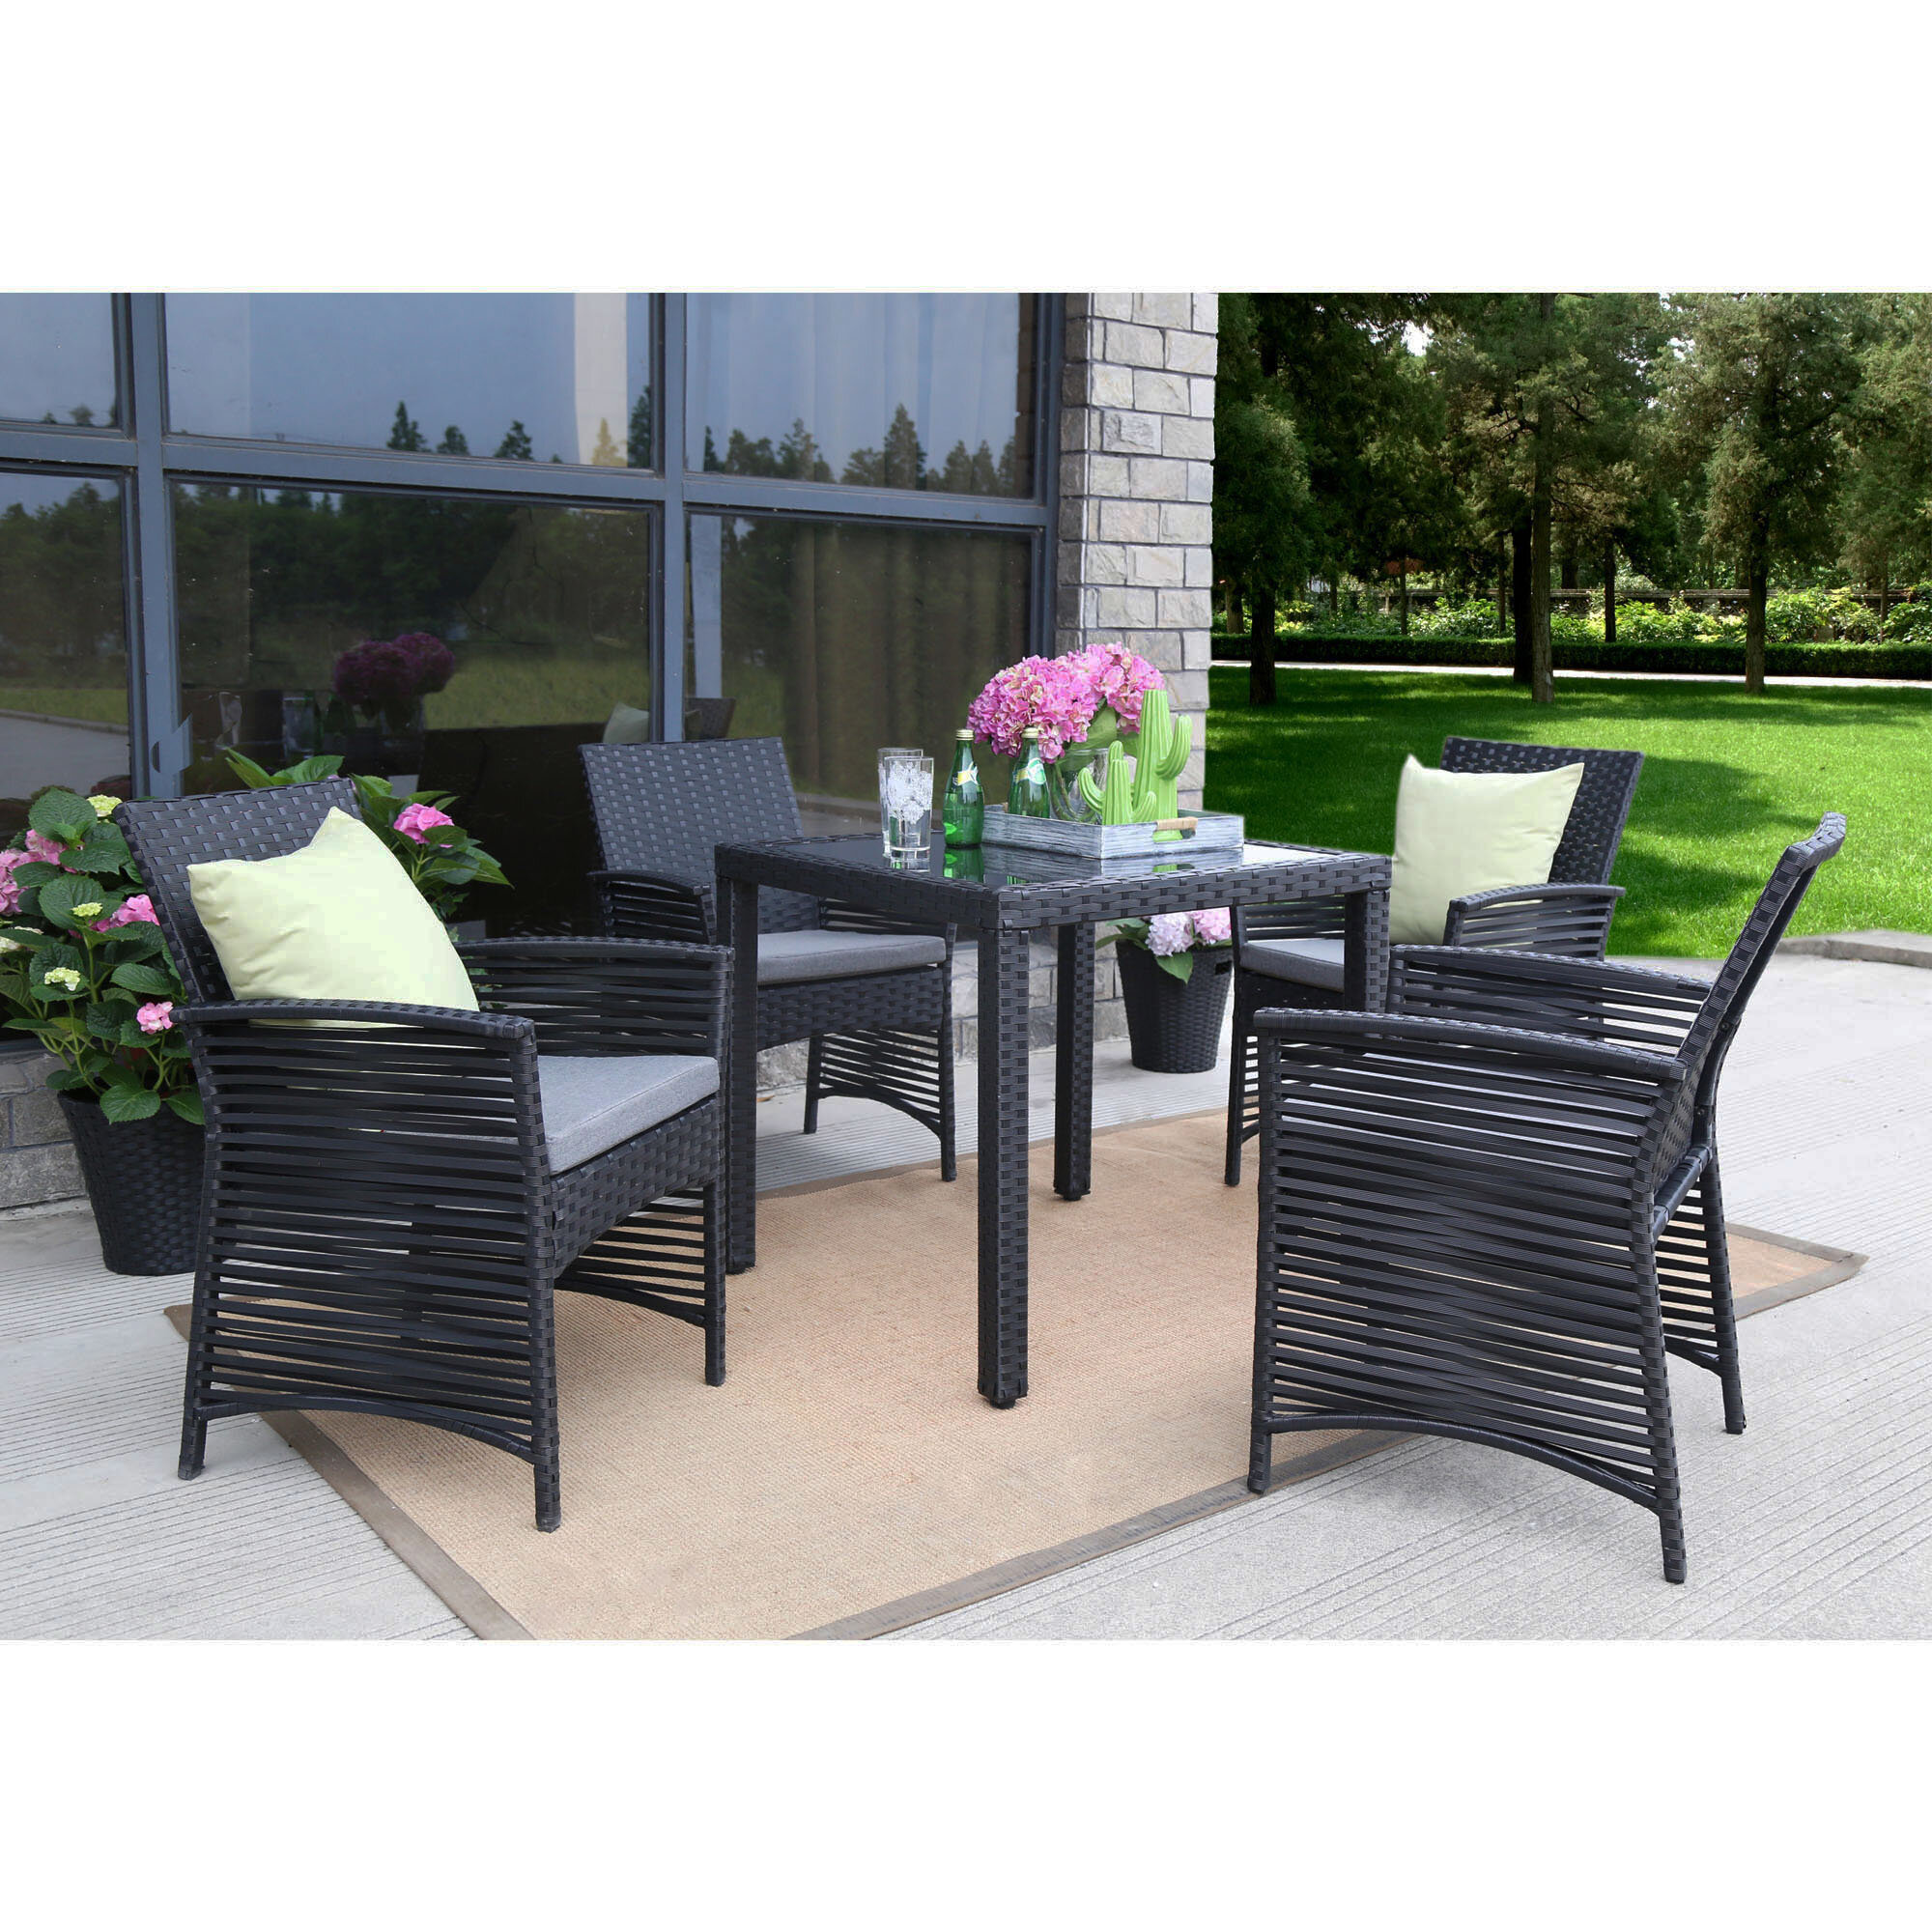 Bay isle home collingwood backyard steel frame 5 pieces dining set with cushions wayfair